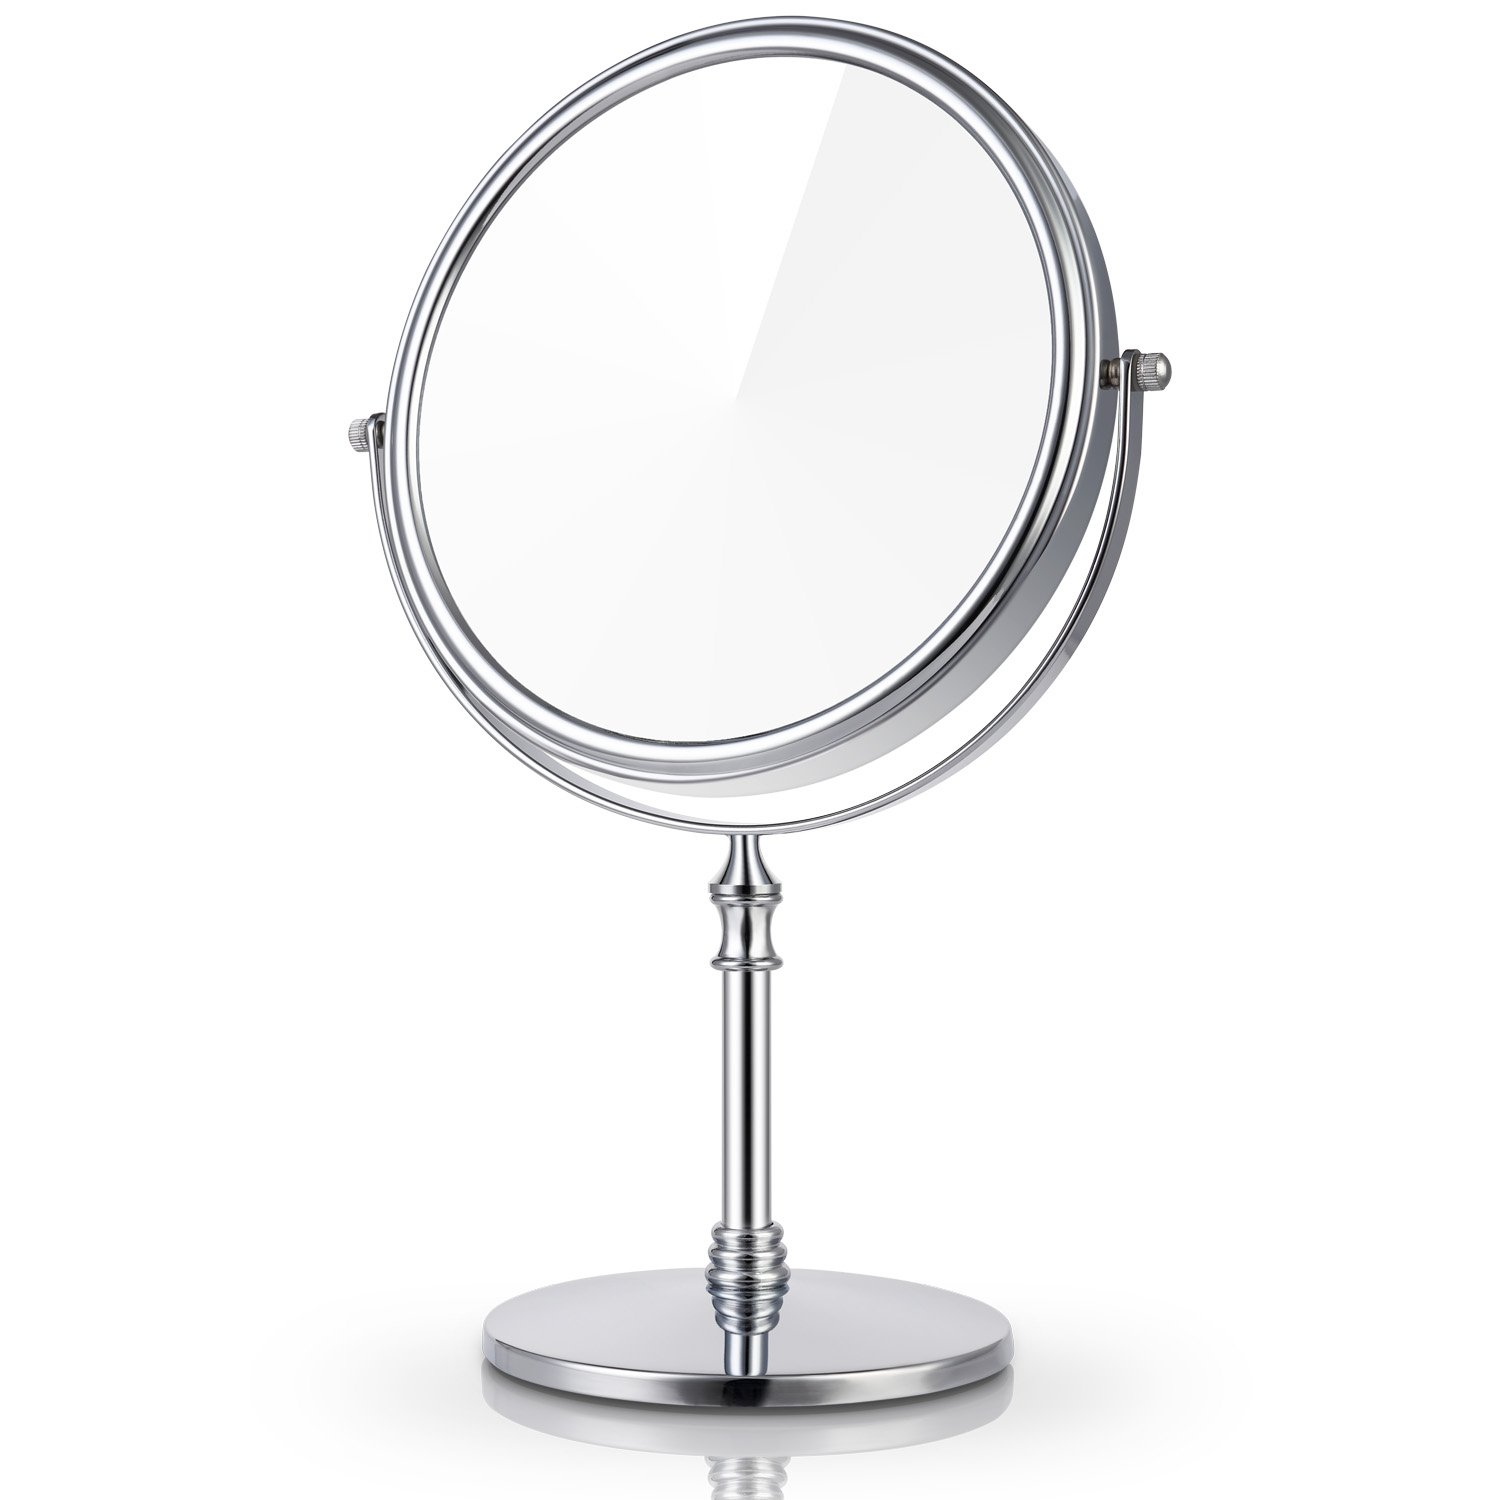 Miusco 7X Magnifying Two Sided Vanity Makeup Mirror, Round, Chrome by Miusco